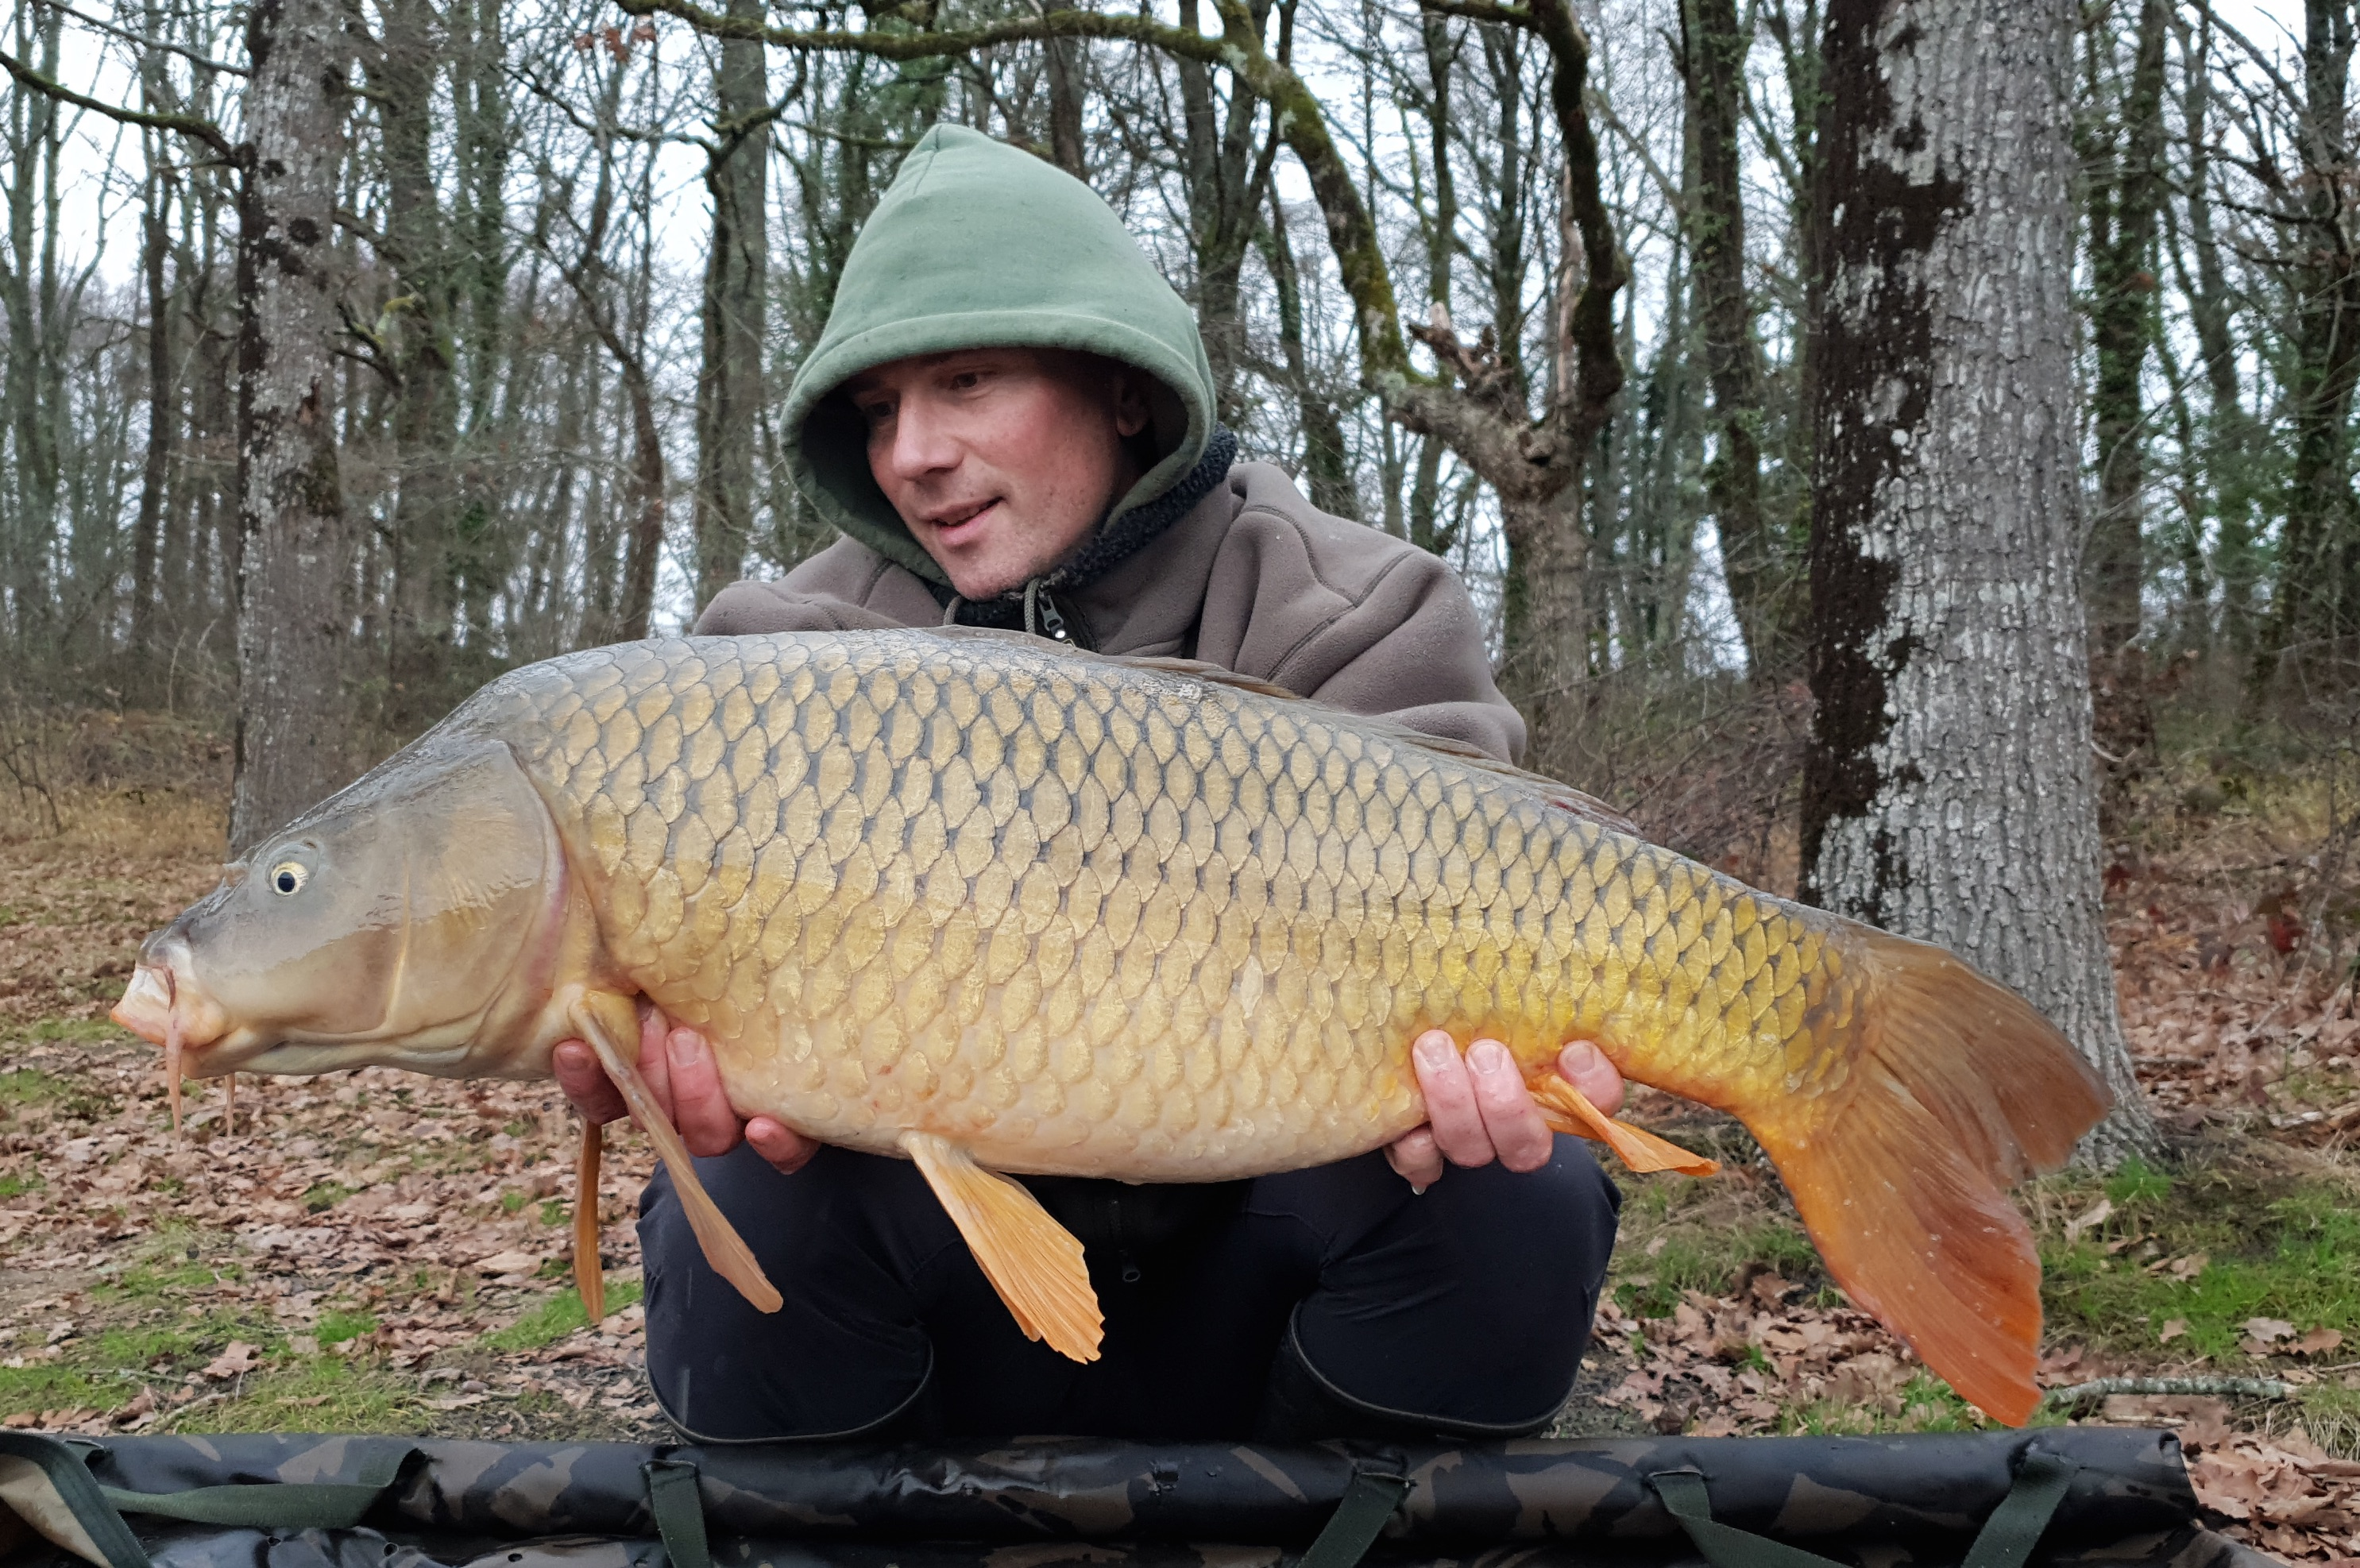 http://starbaits.com/fichiers/images/team/gallery/NICARD_Stephane/nicard_010_2019.jpg